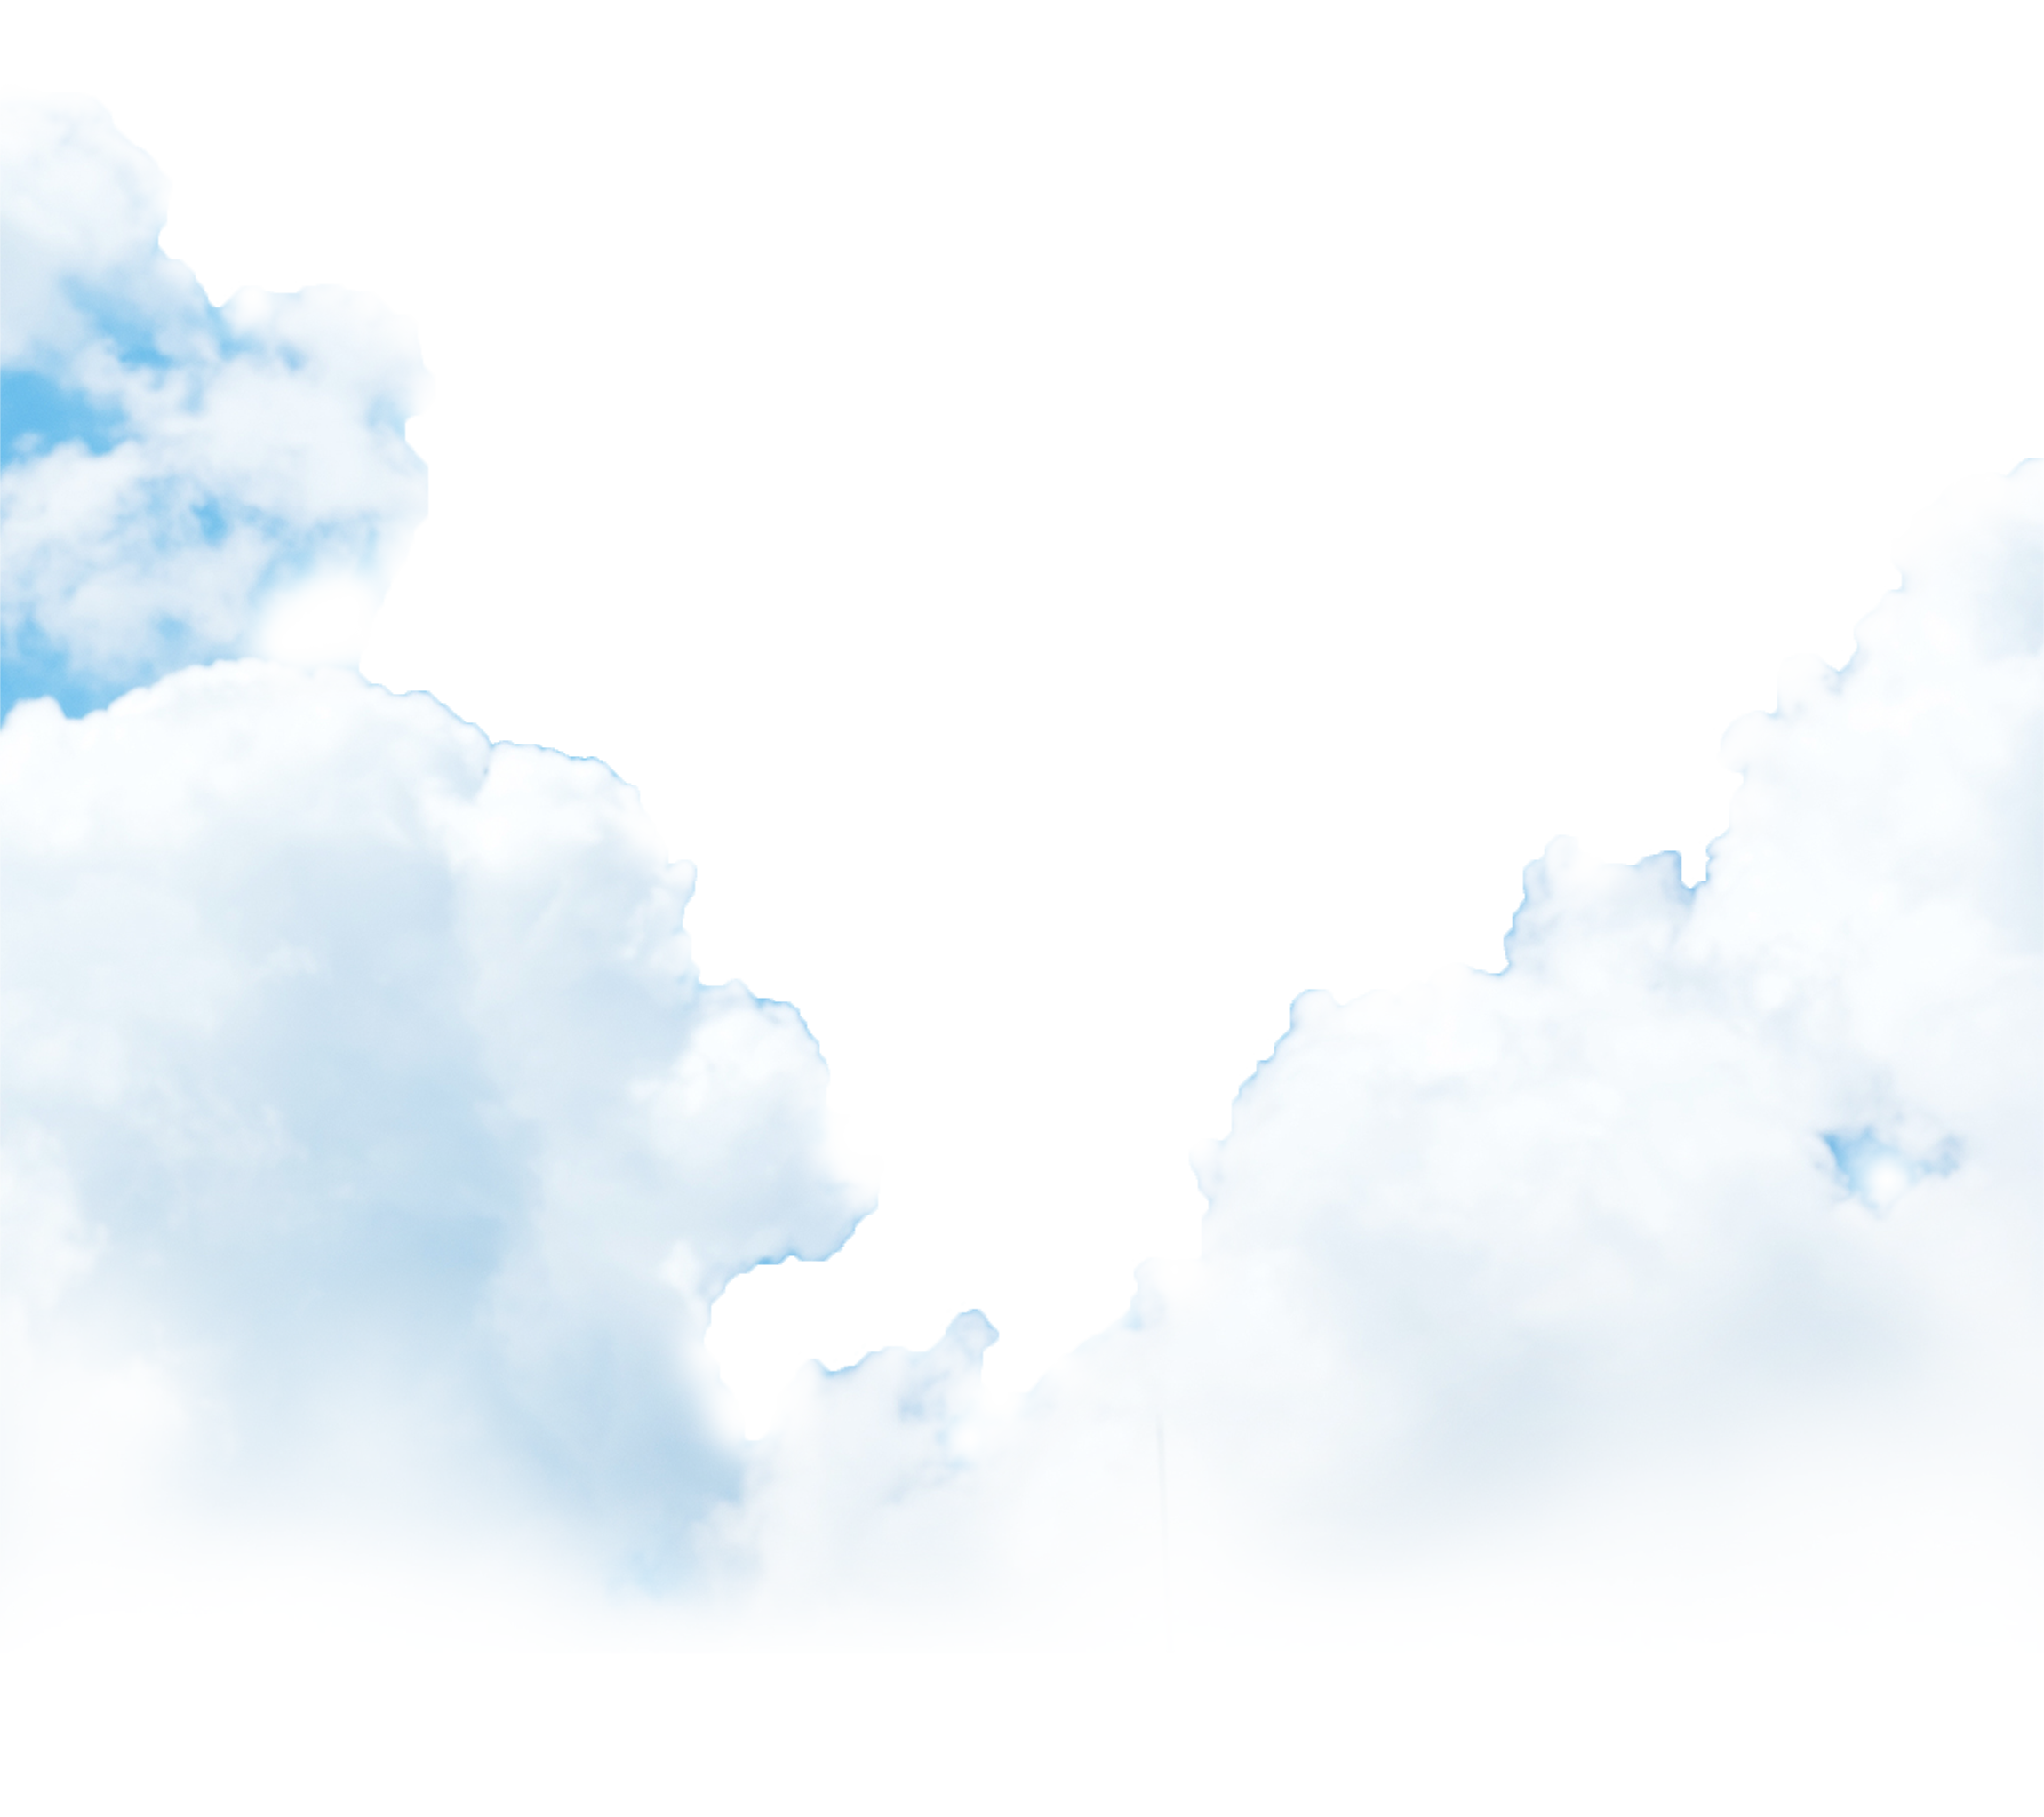 bg_cloud_botto